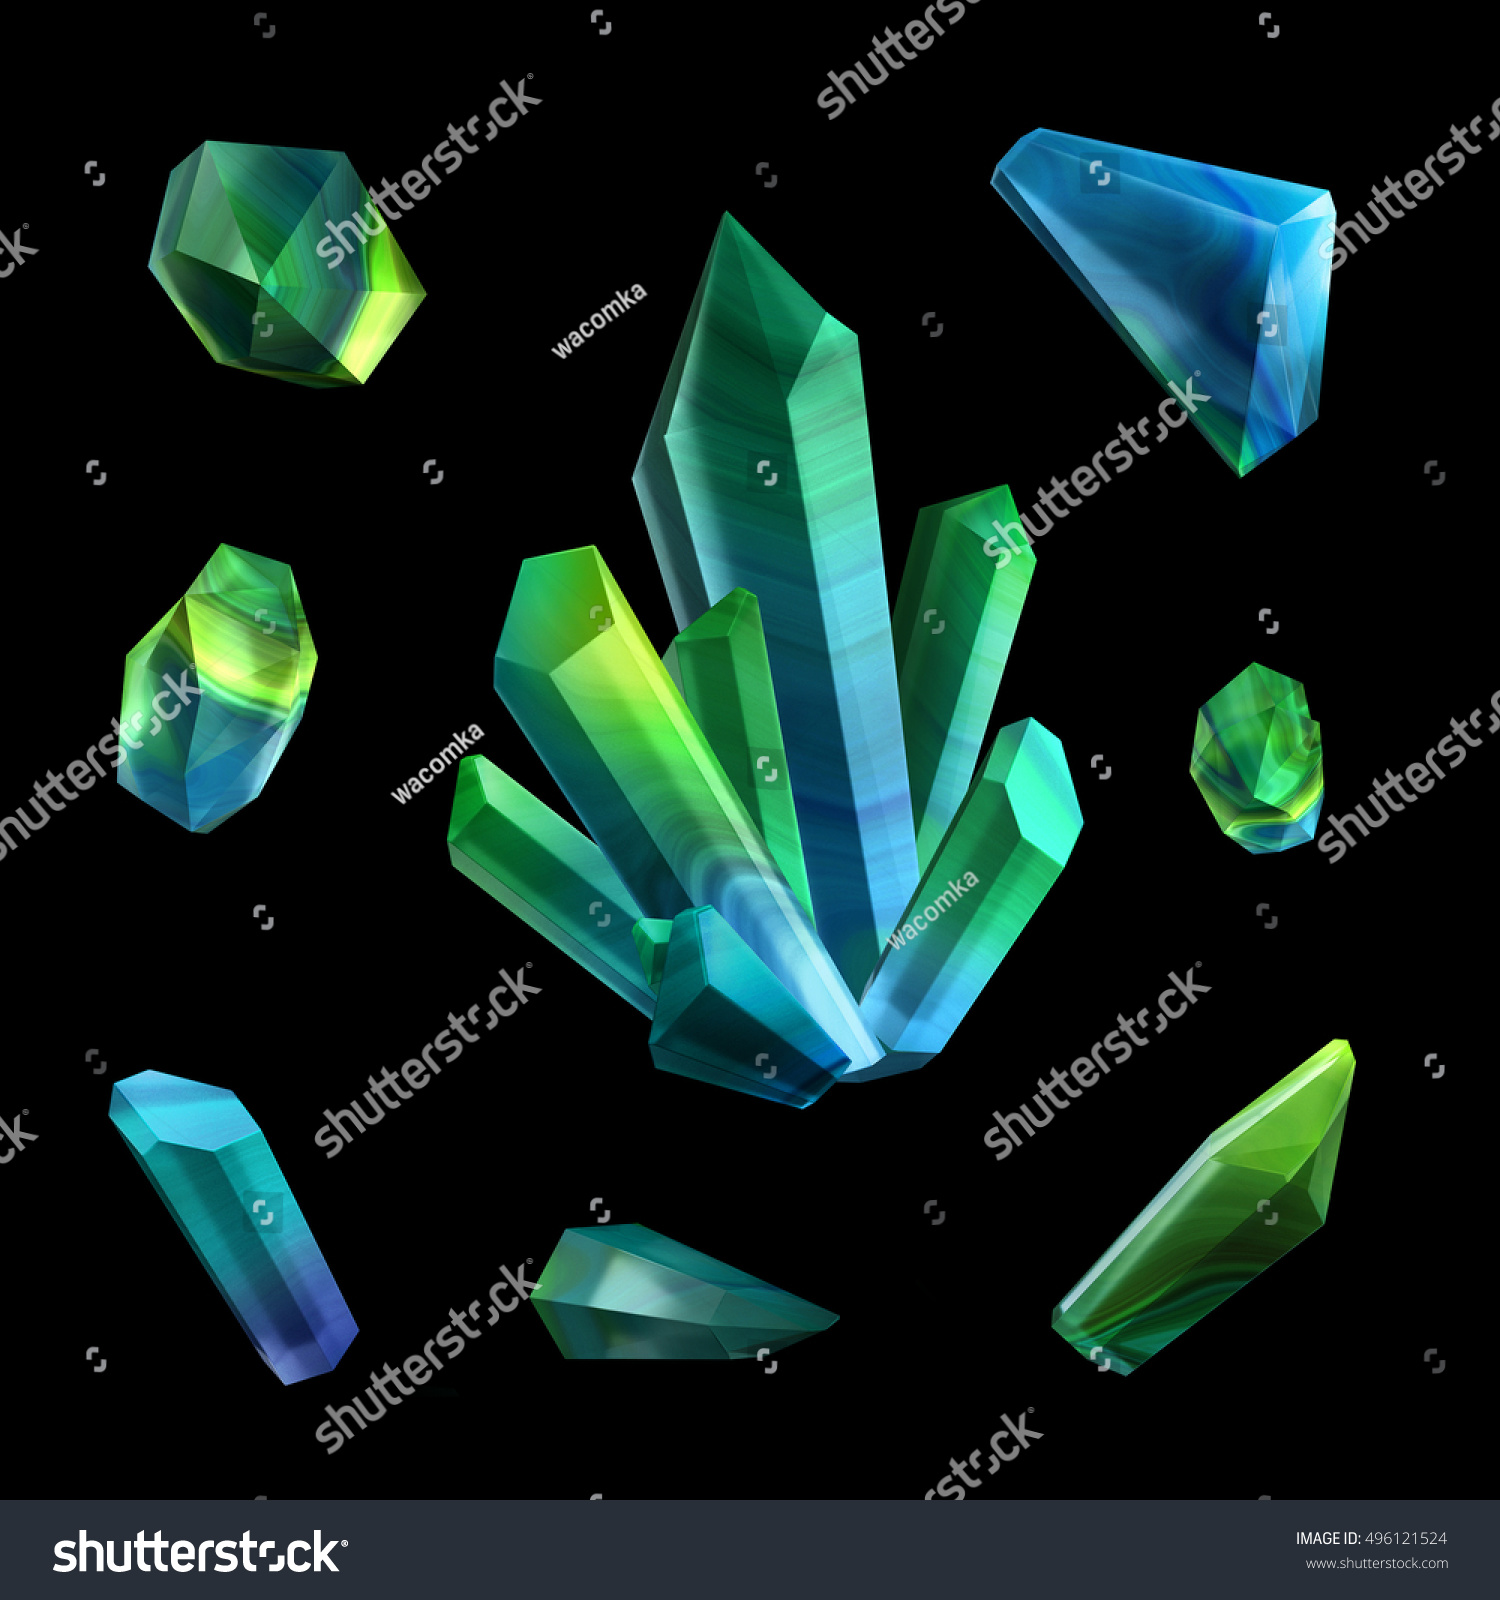 total on ct about treasuresexceptional en at ca the weight press archive and smaragdohrgehaenge emerald fancy estimate exceptional diamonds news treasures precious pendants us dorotheum gemstones auction ear br stone